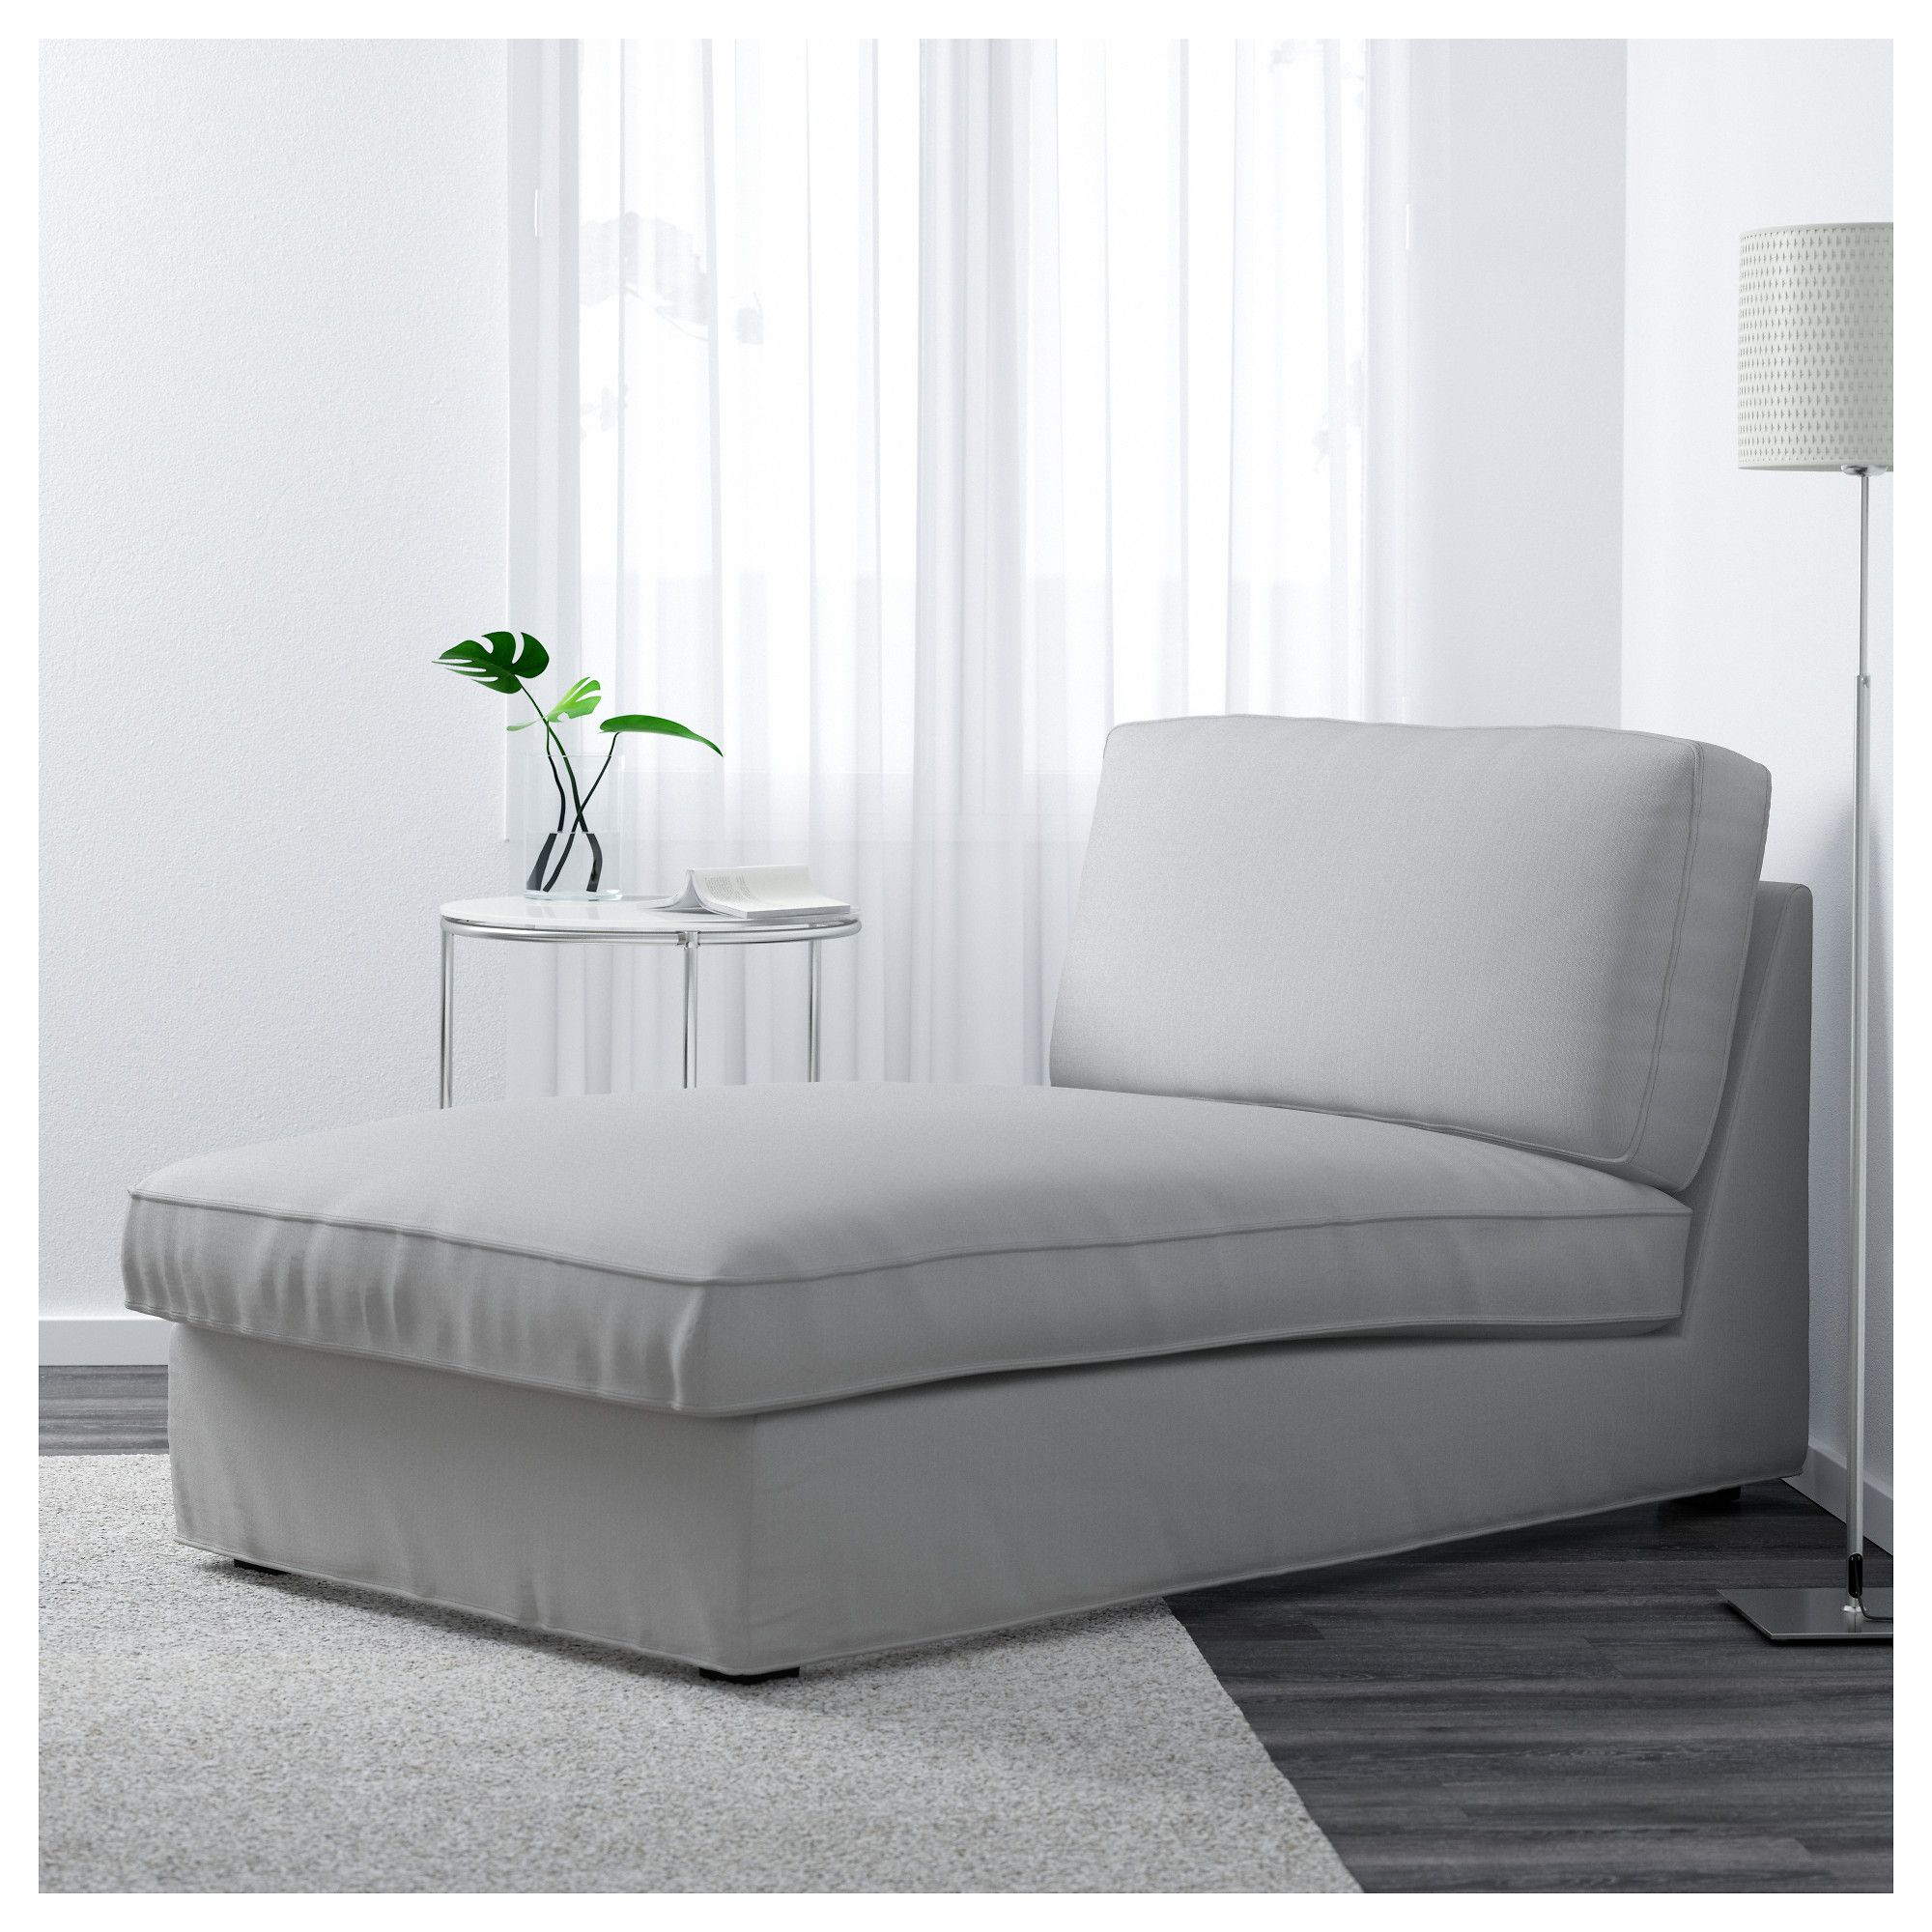 Swell Kivik Chaise Borred Gray Green Media Room Chaise Longue Squirreltailoven Fun Painted Chair Ideas Images Squirreltailovenorg